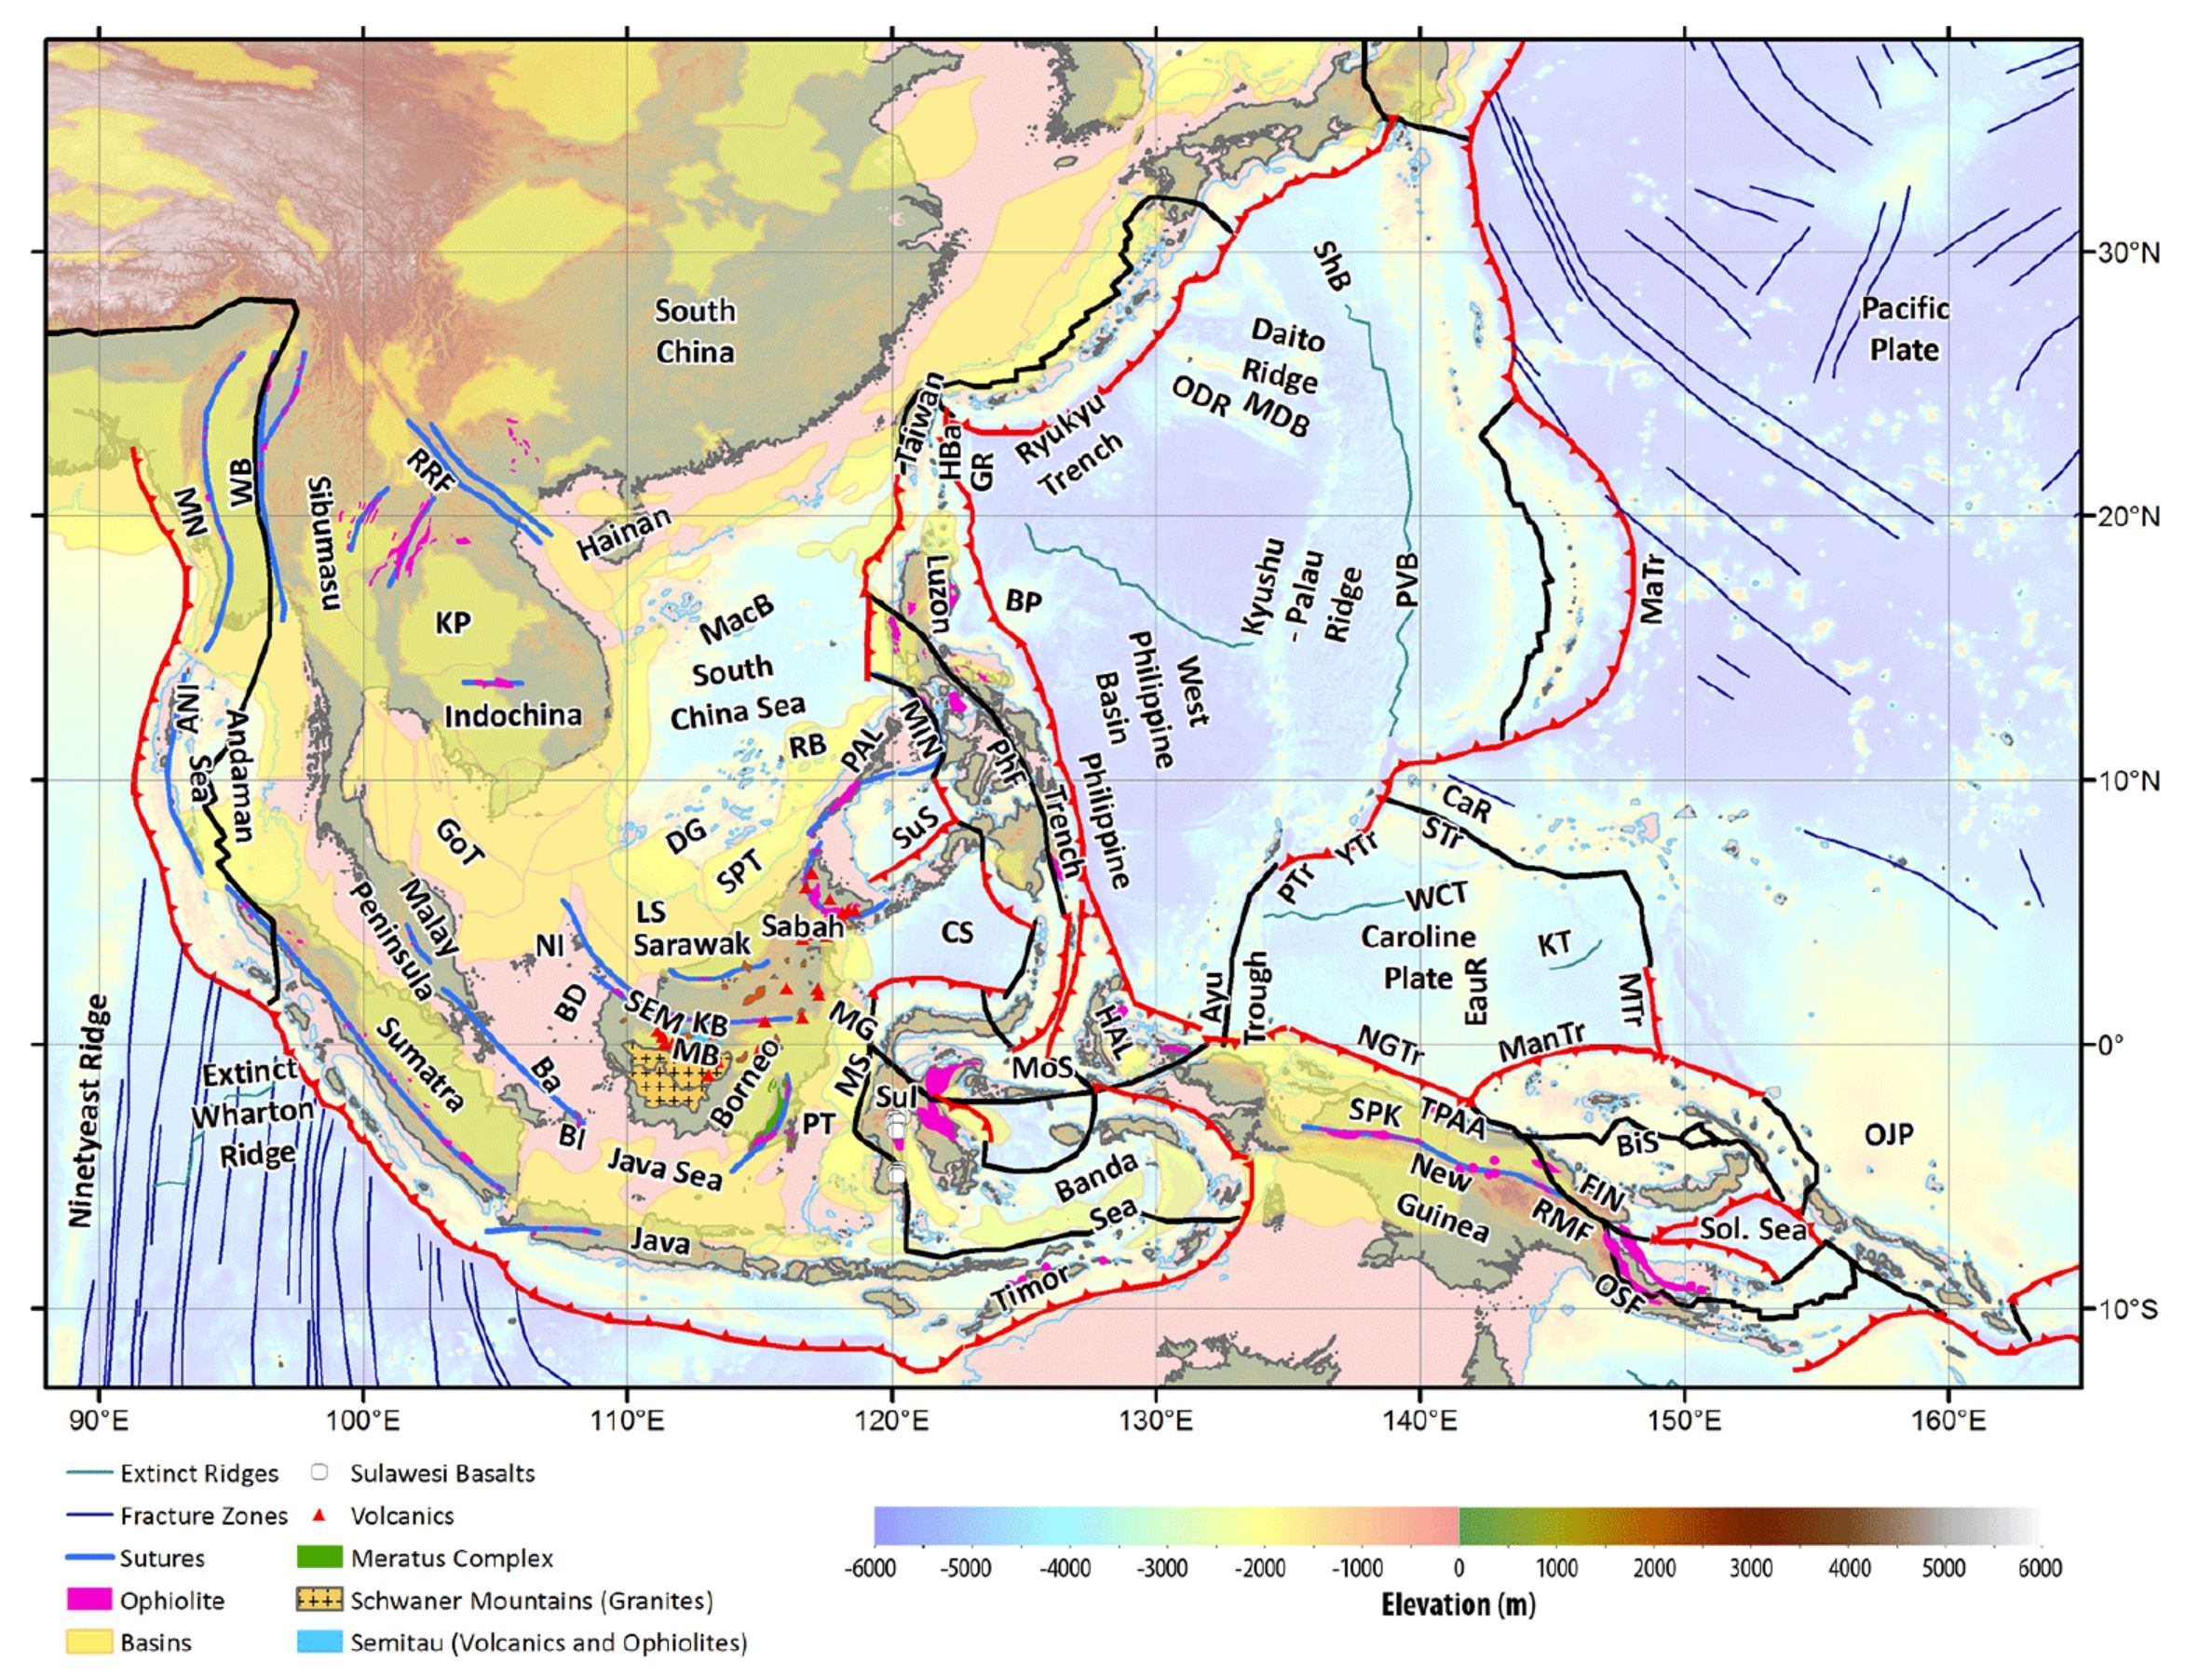 Earthquake report celebes sea jay patton online regional tectonic setting with plate boundaries morstransforms black subduction zones teethed red from bird 2003 and ophiolite belts representing gumiabroncs Image collections